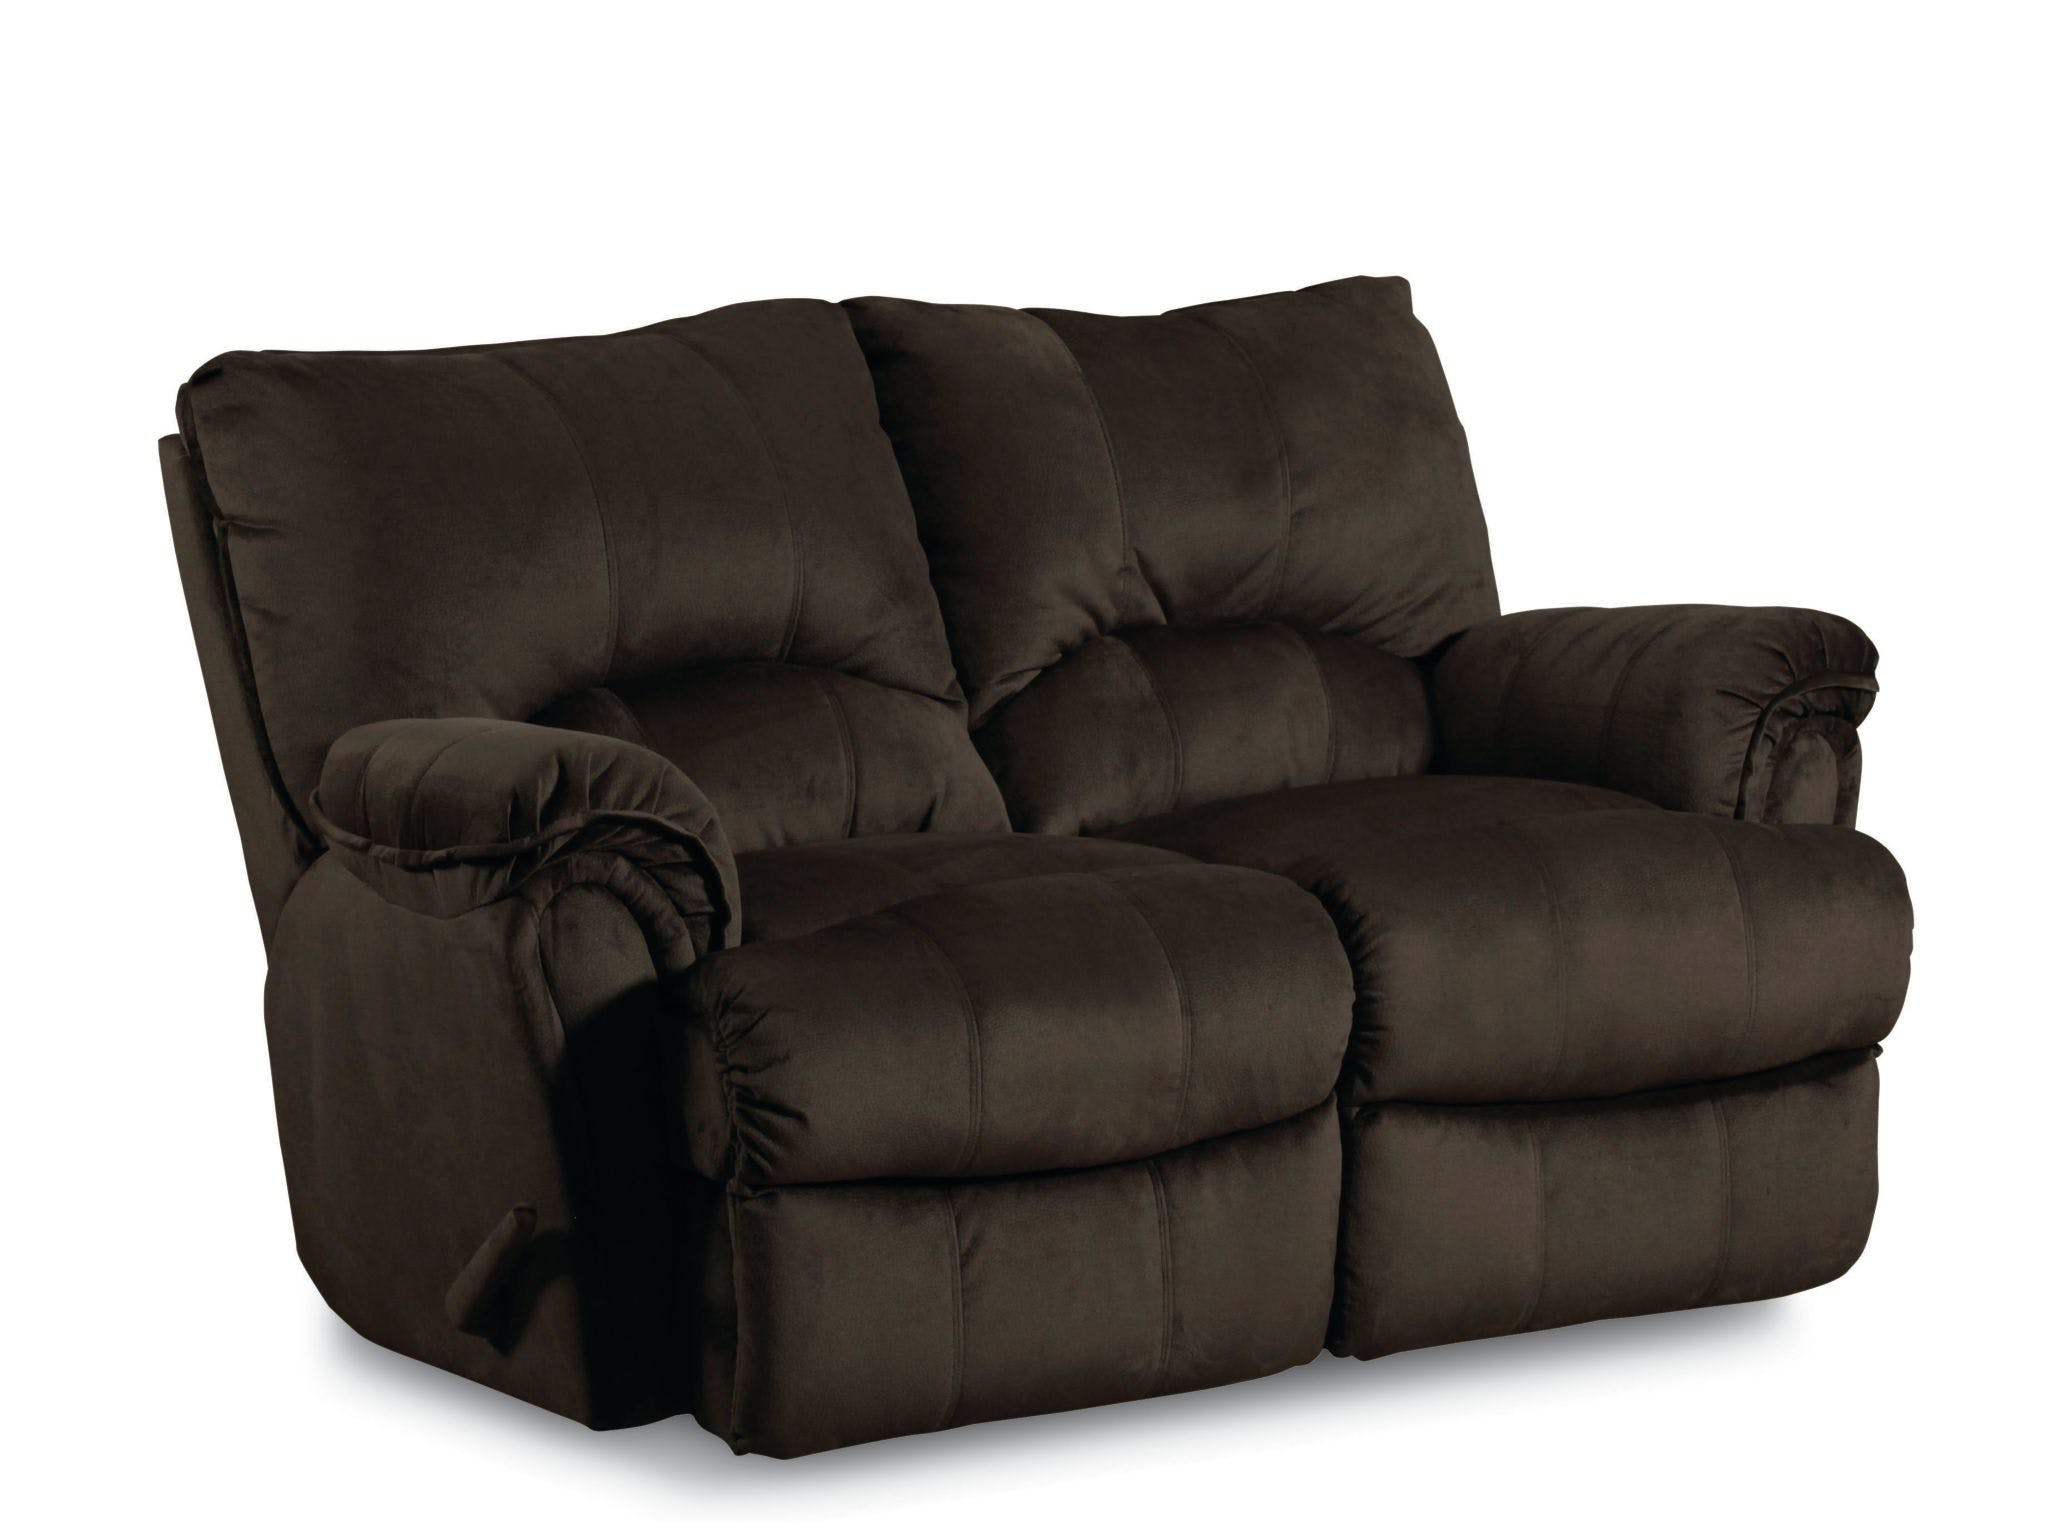 Tips for choosing the best double rocker   recliner loveseat